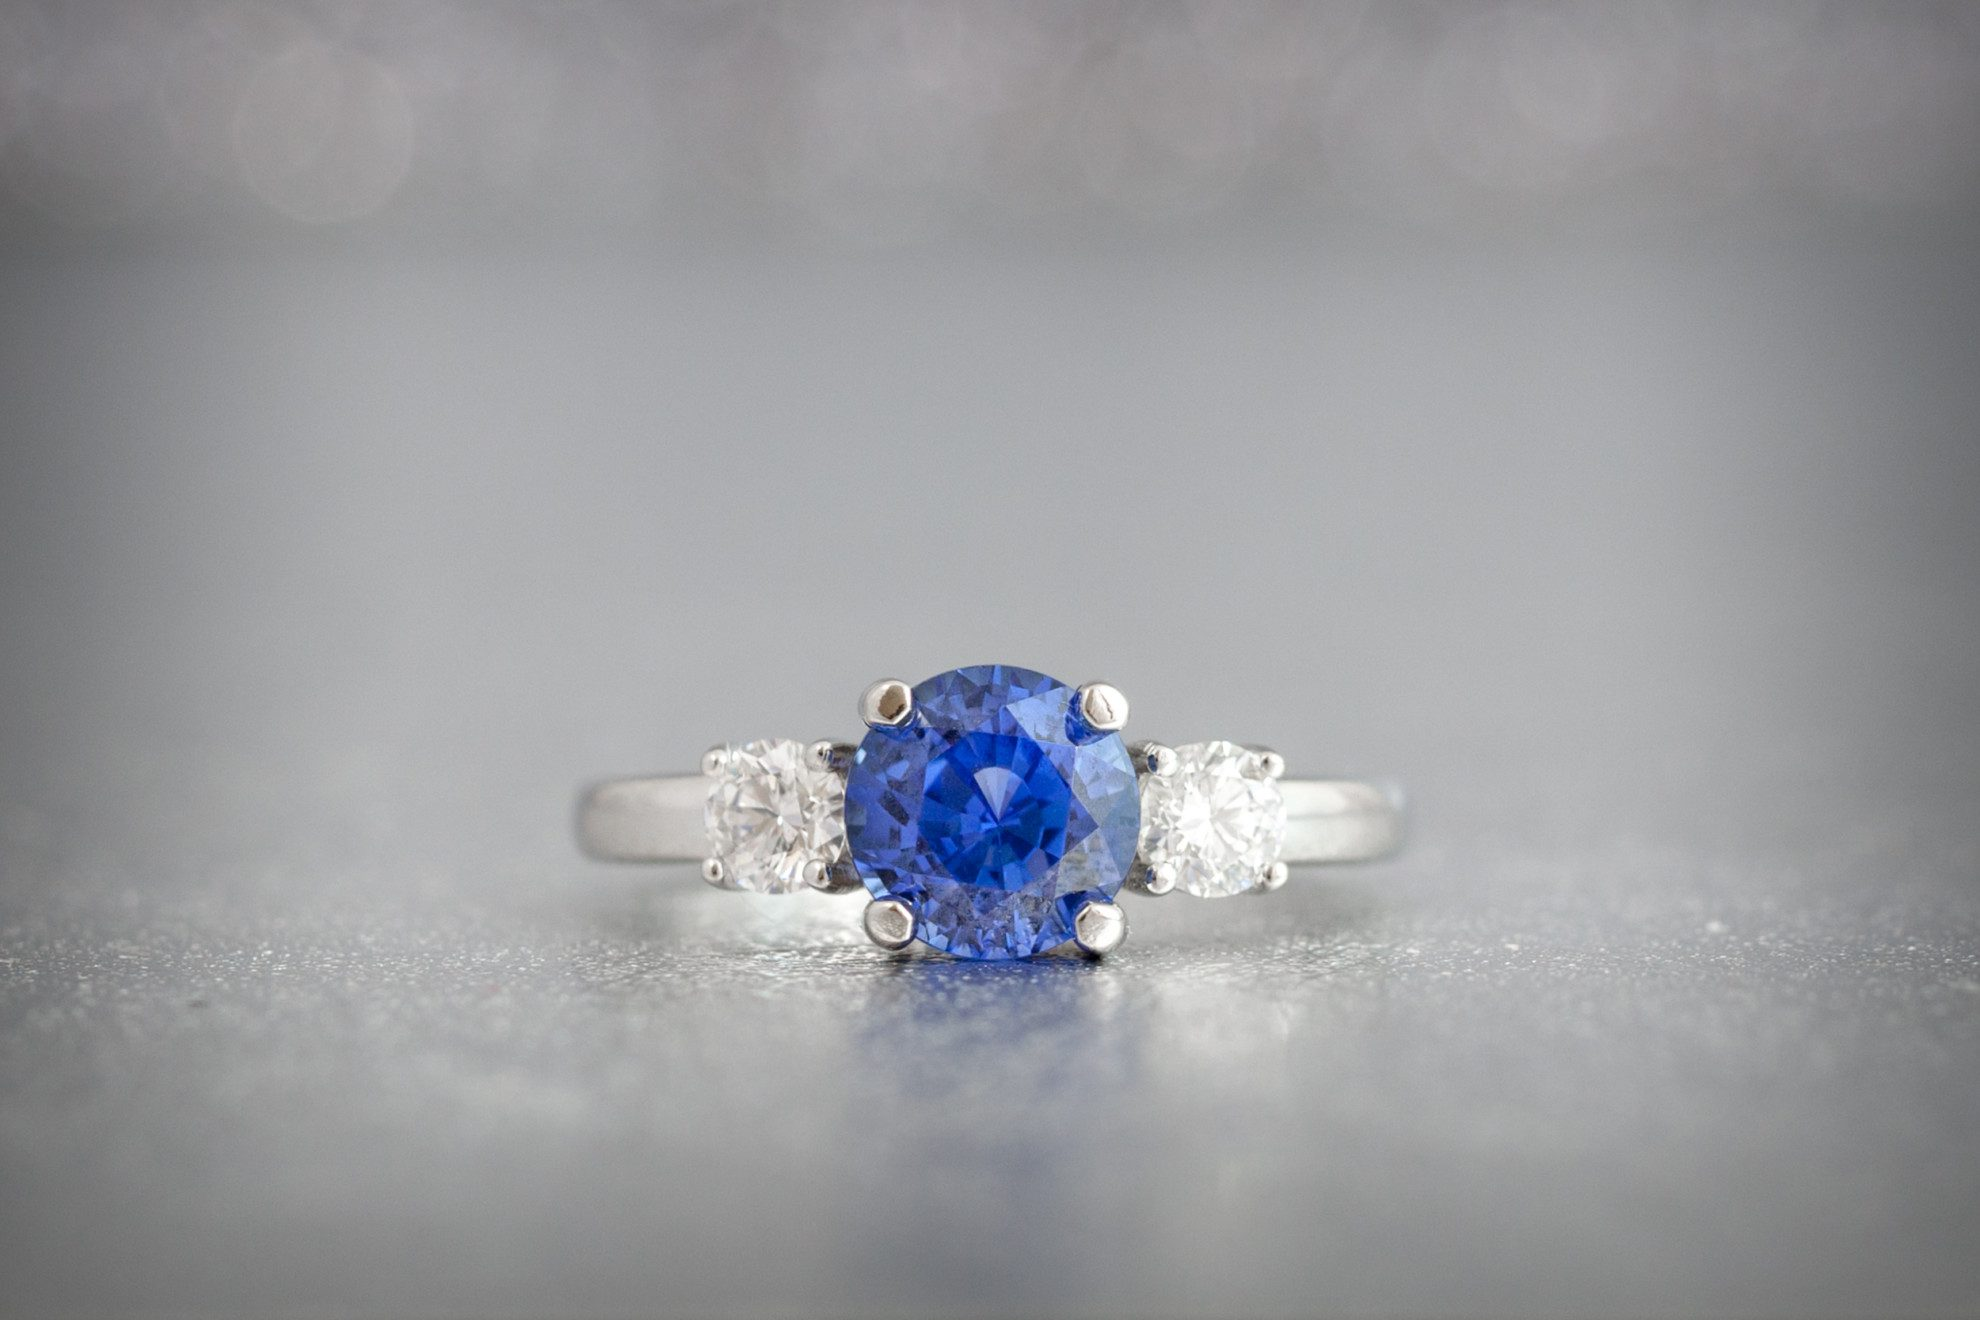 blog blue the gemstone and sapphire colored meaning wedding of rings engagement ring ritani